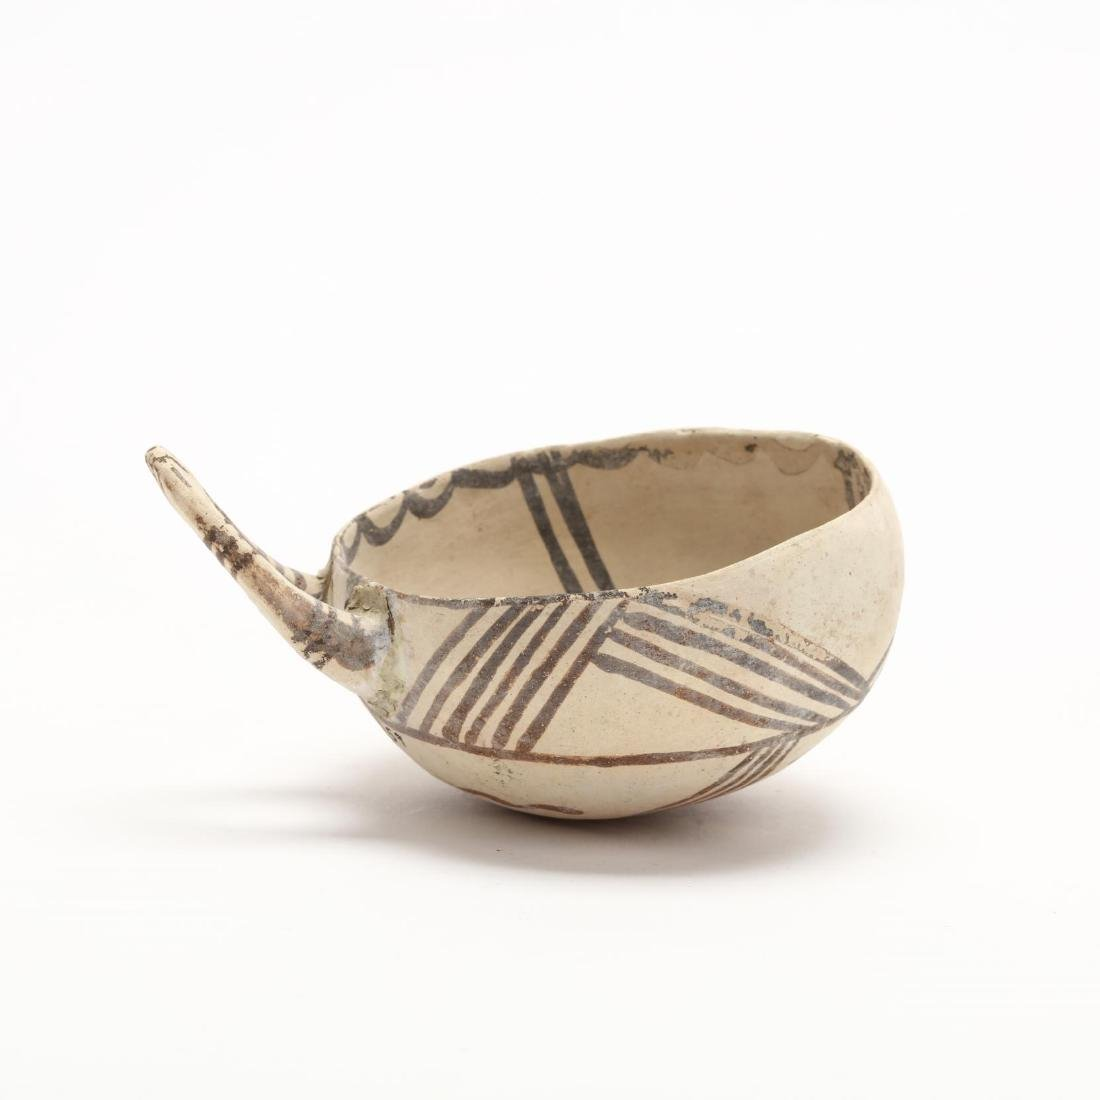 Cypriot Middle Bronze Age White Painted Ware Bowl or - 5